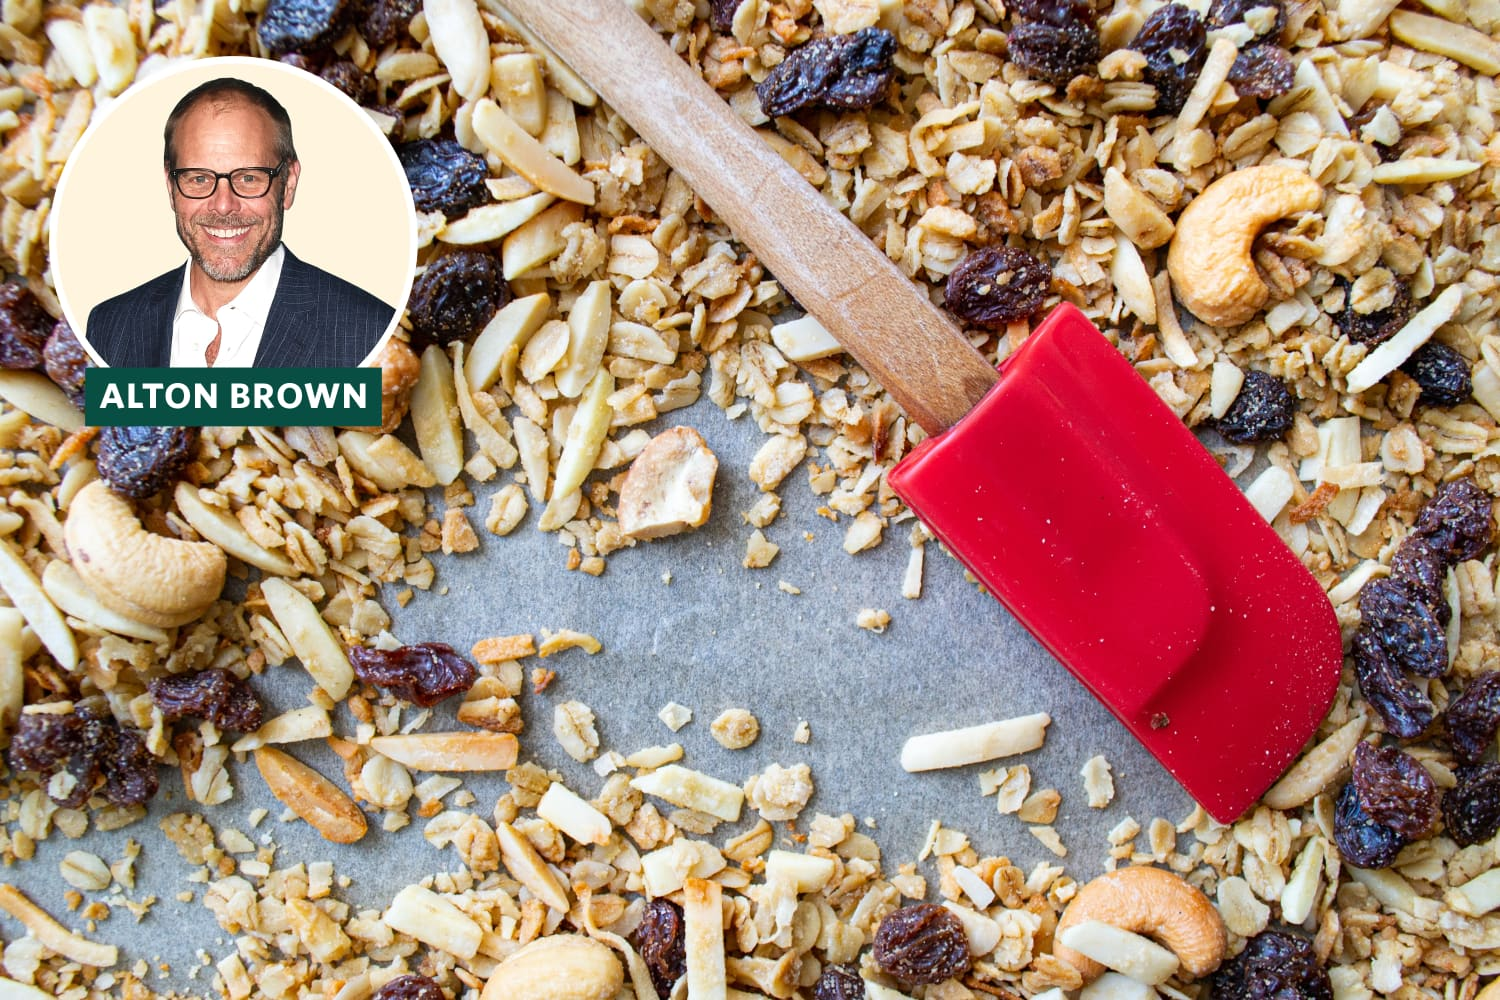 The Problem with Alton Brown's Extremely Popular Granola Recipe